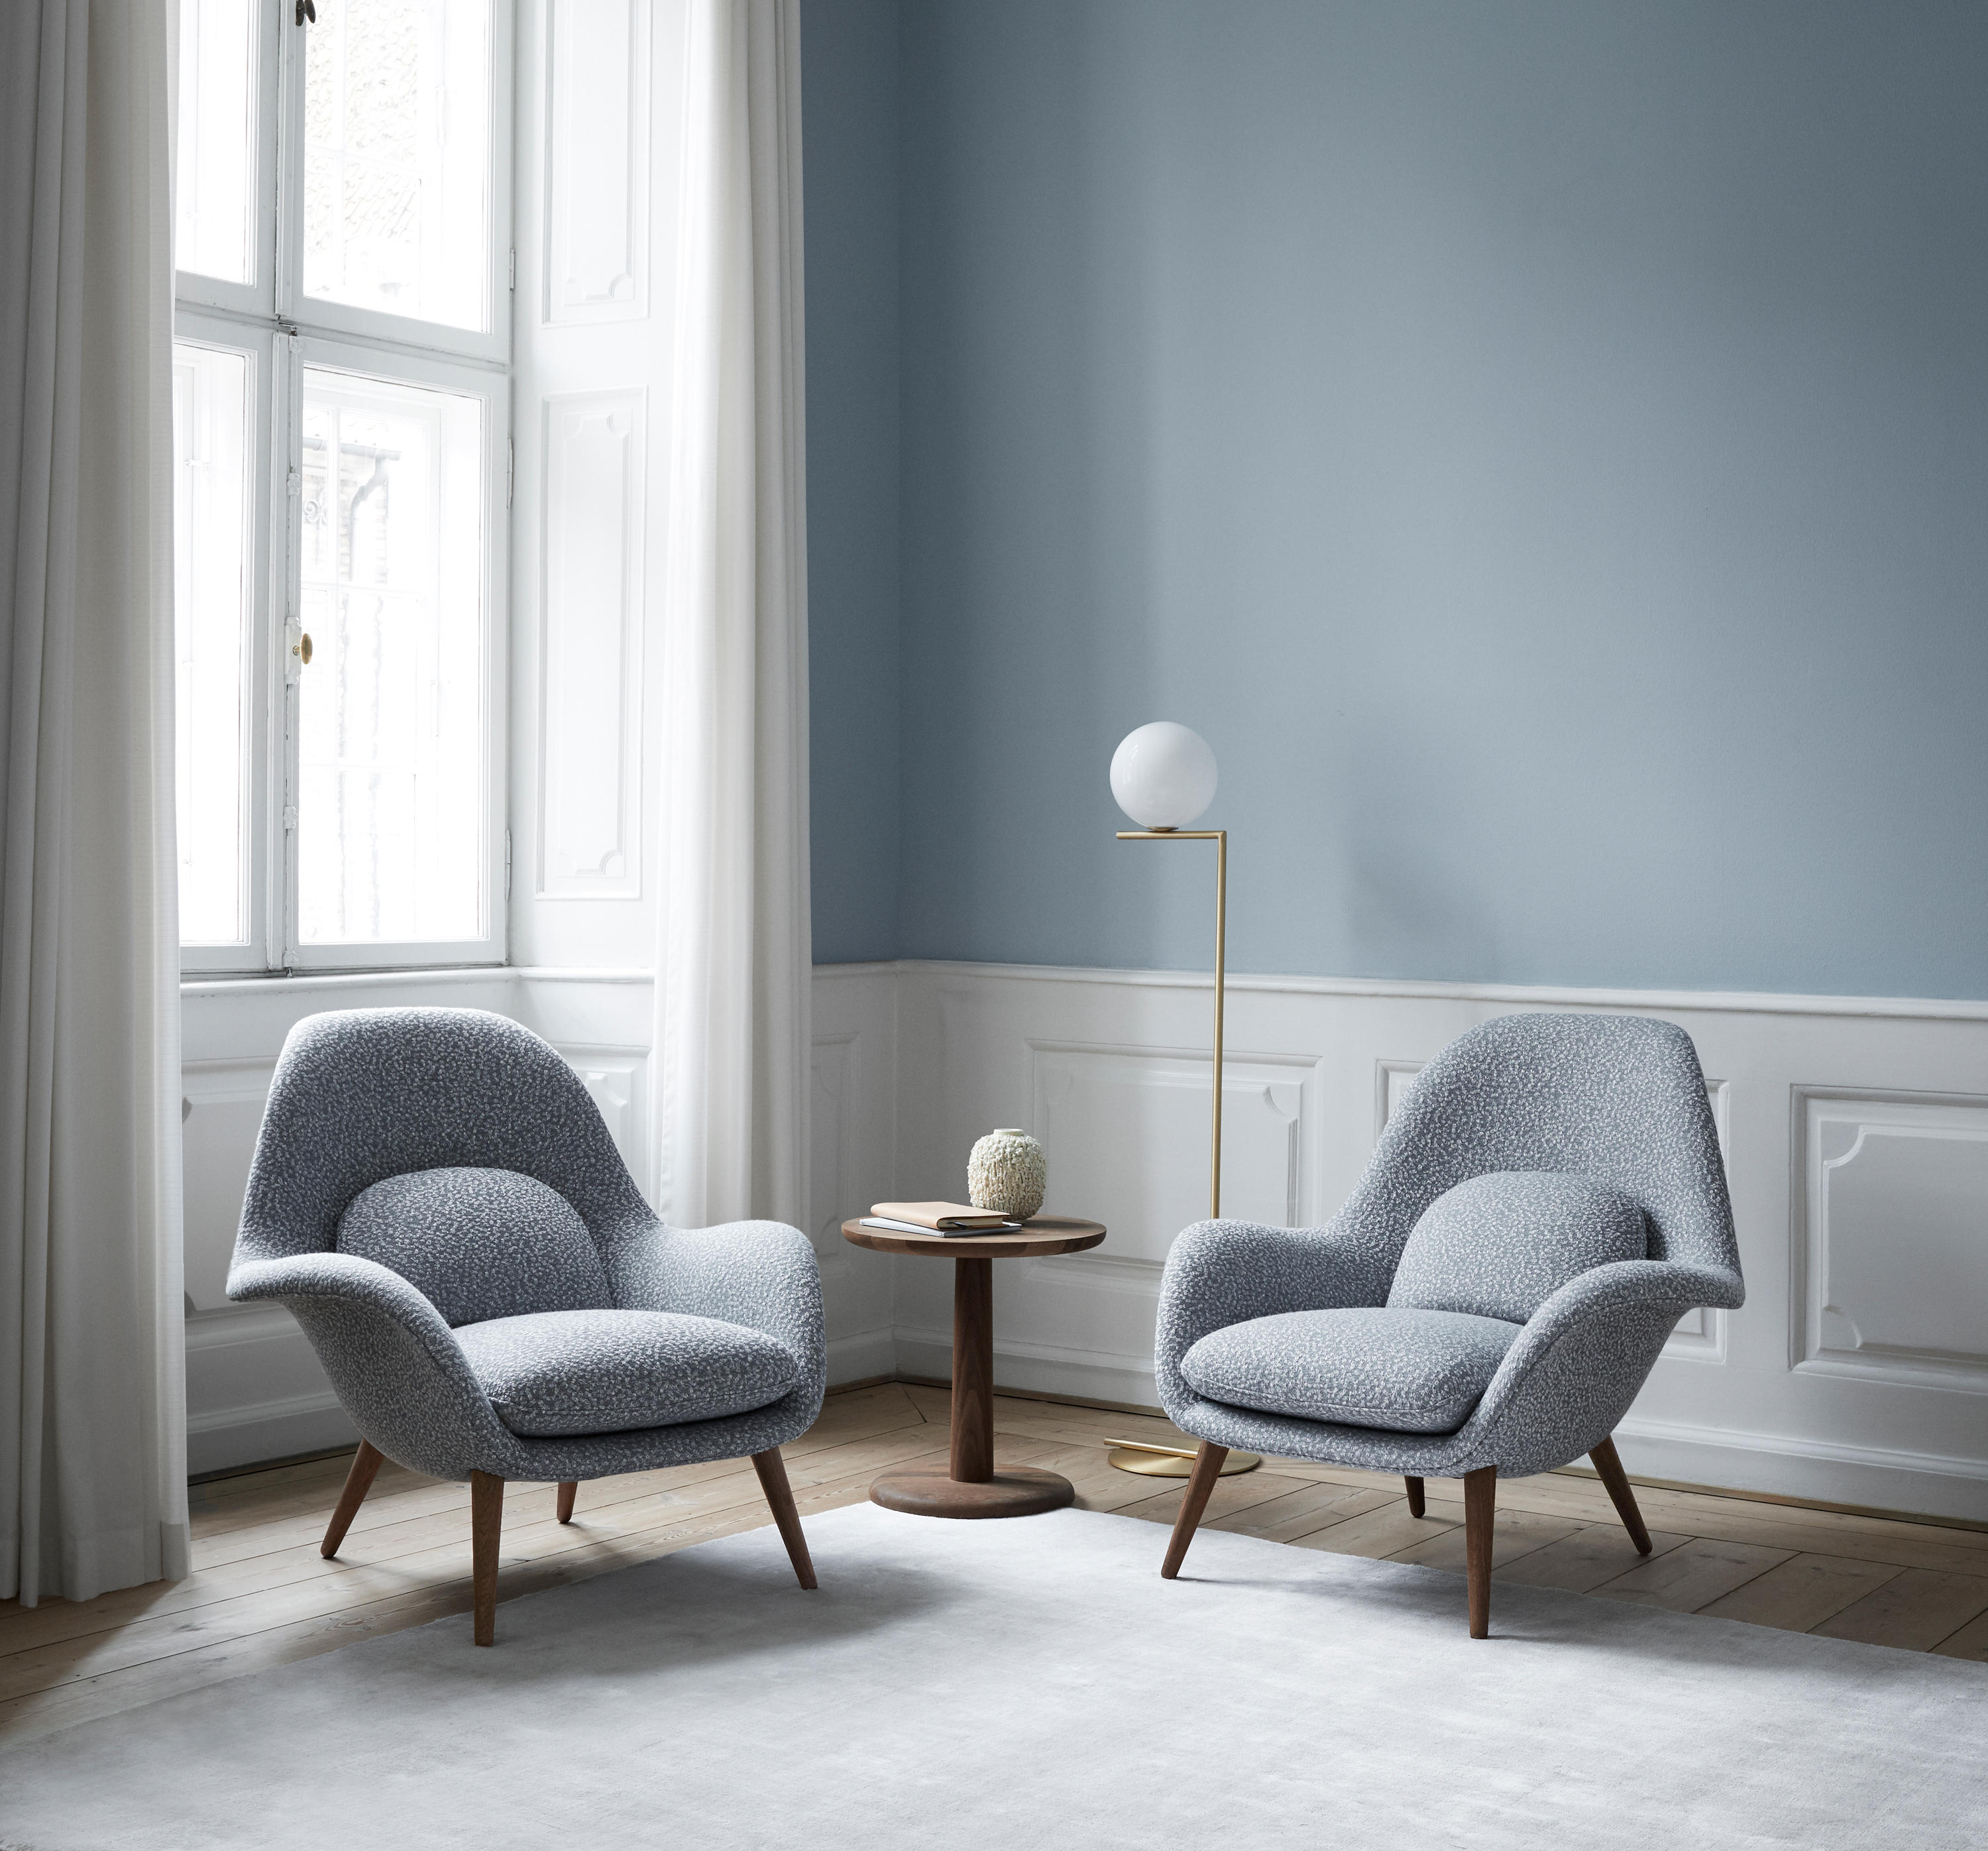 SWOON CHAIR - Lounge chairs from Fredericia Furniture | Architonic